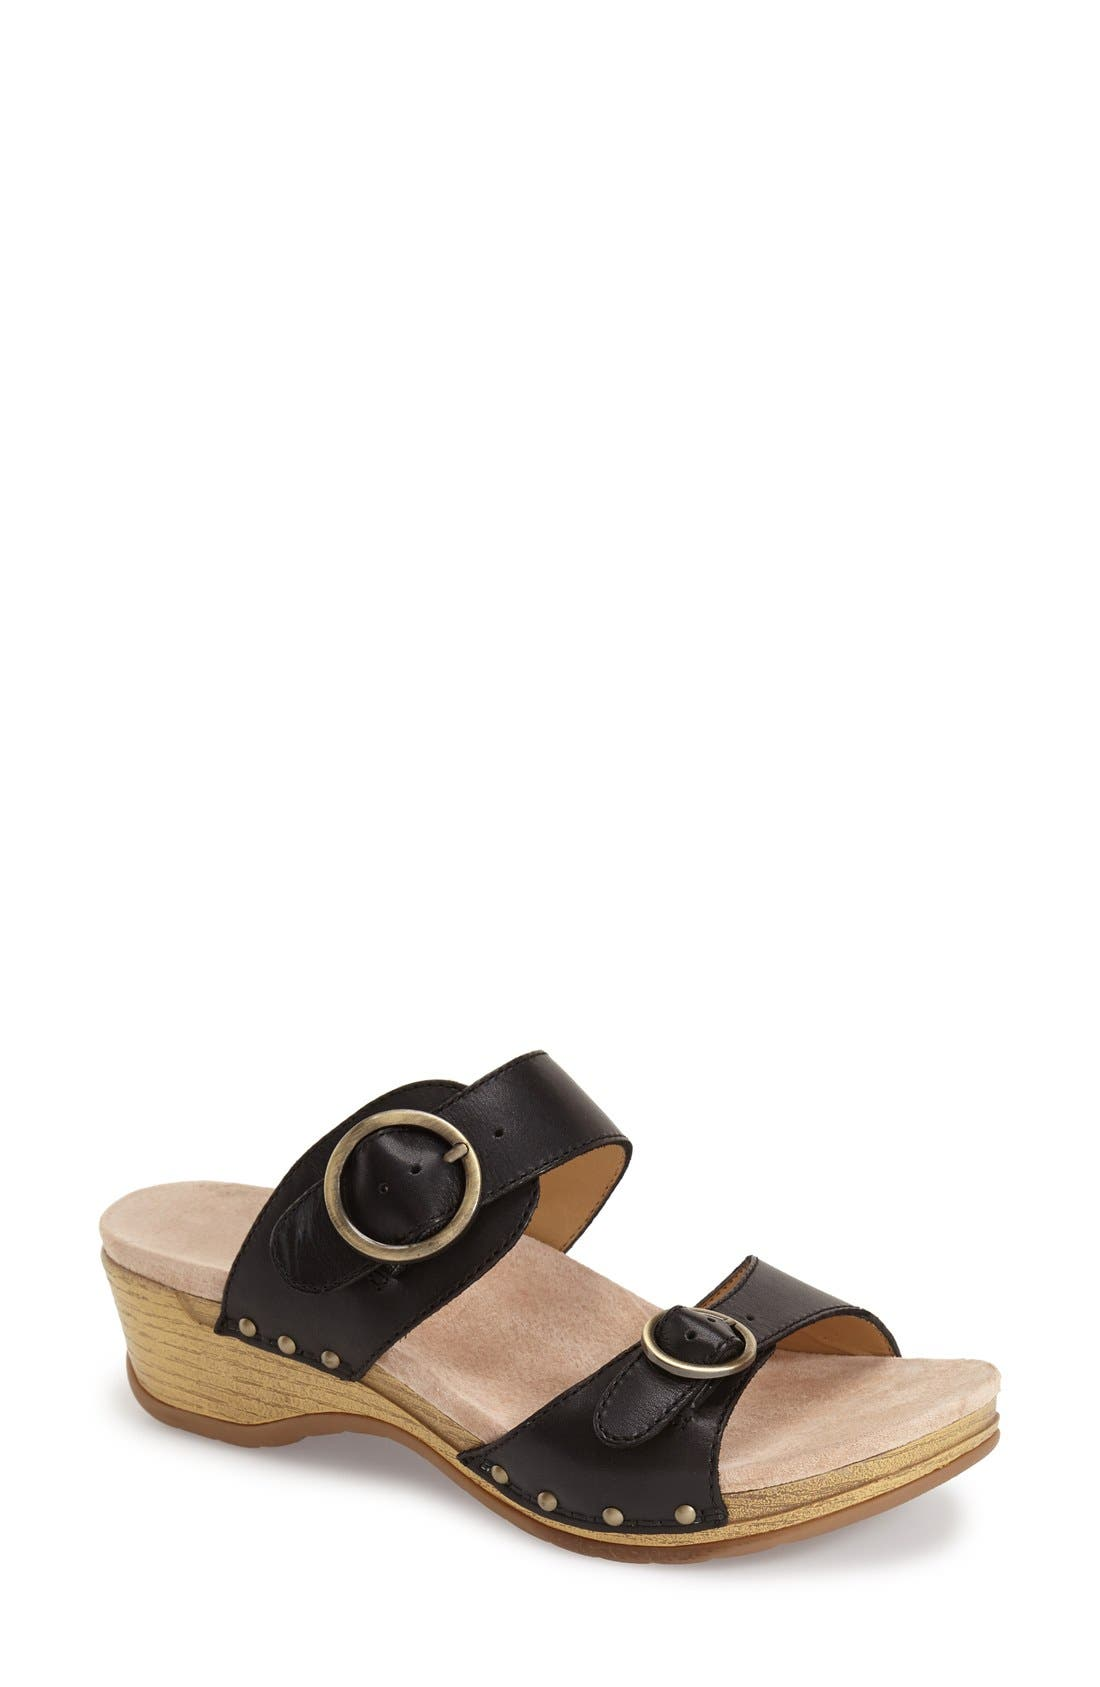 Alternate Image 1 Selected - Dansko 'Manda' Slide Sandal (Women)